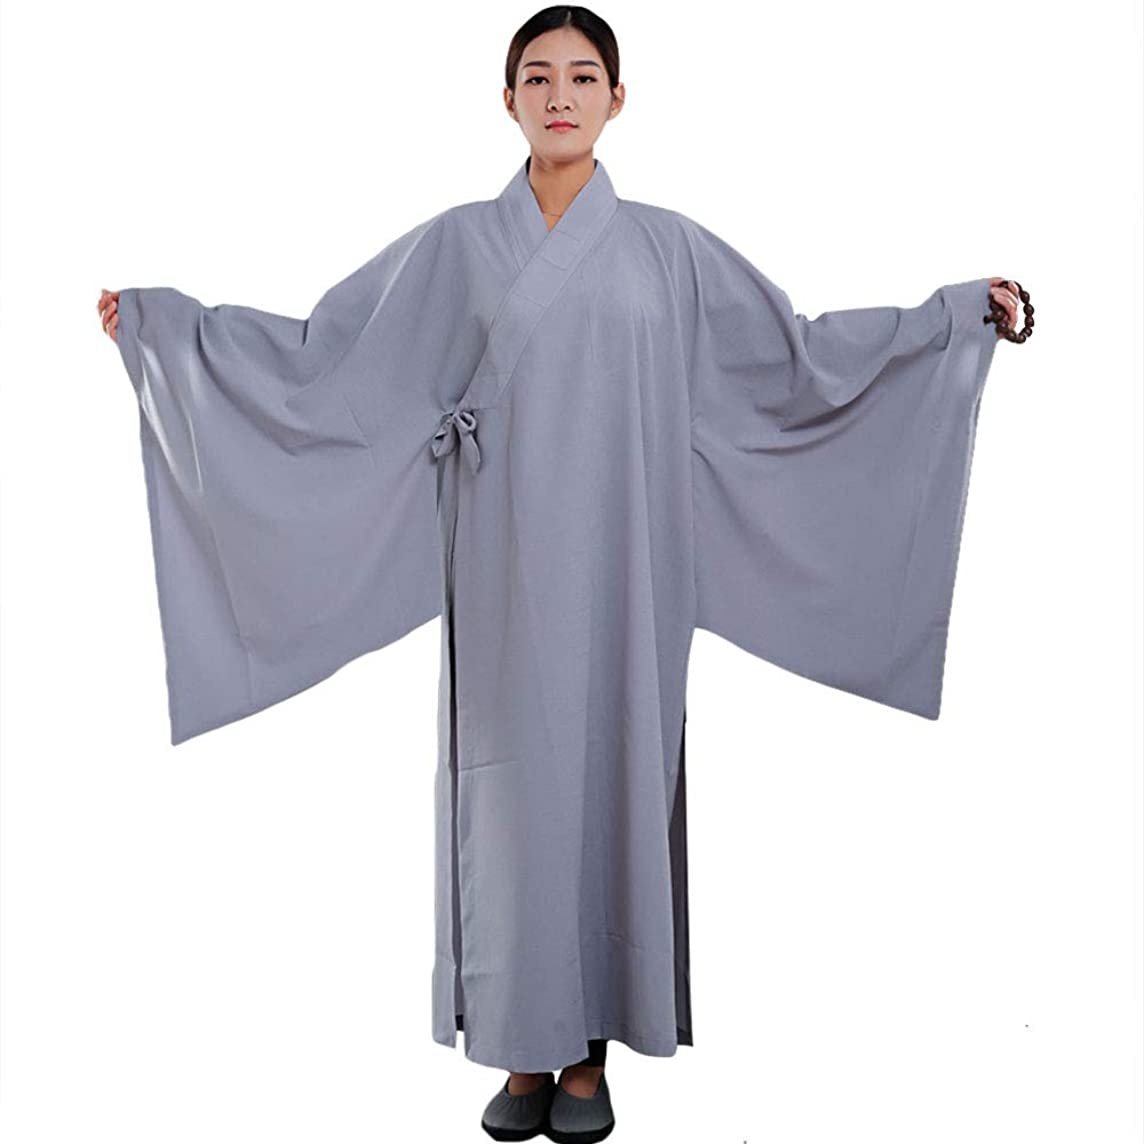 ZooBoo Shaolin Unisex Monk Kung fu Robe Costume Long Gown Suit